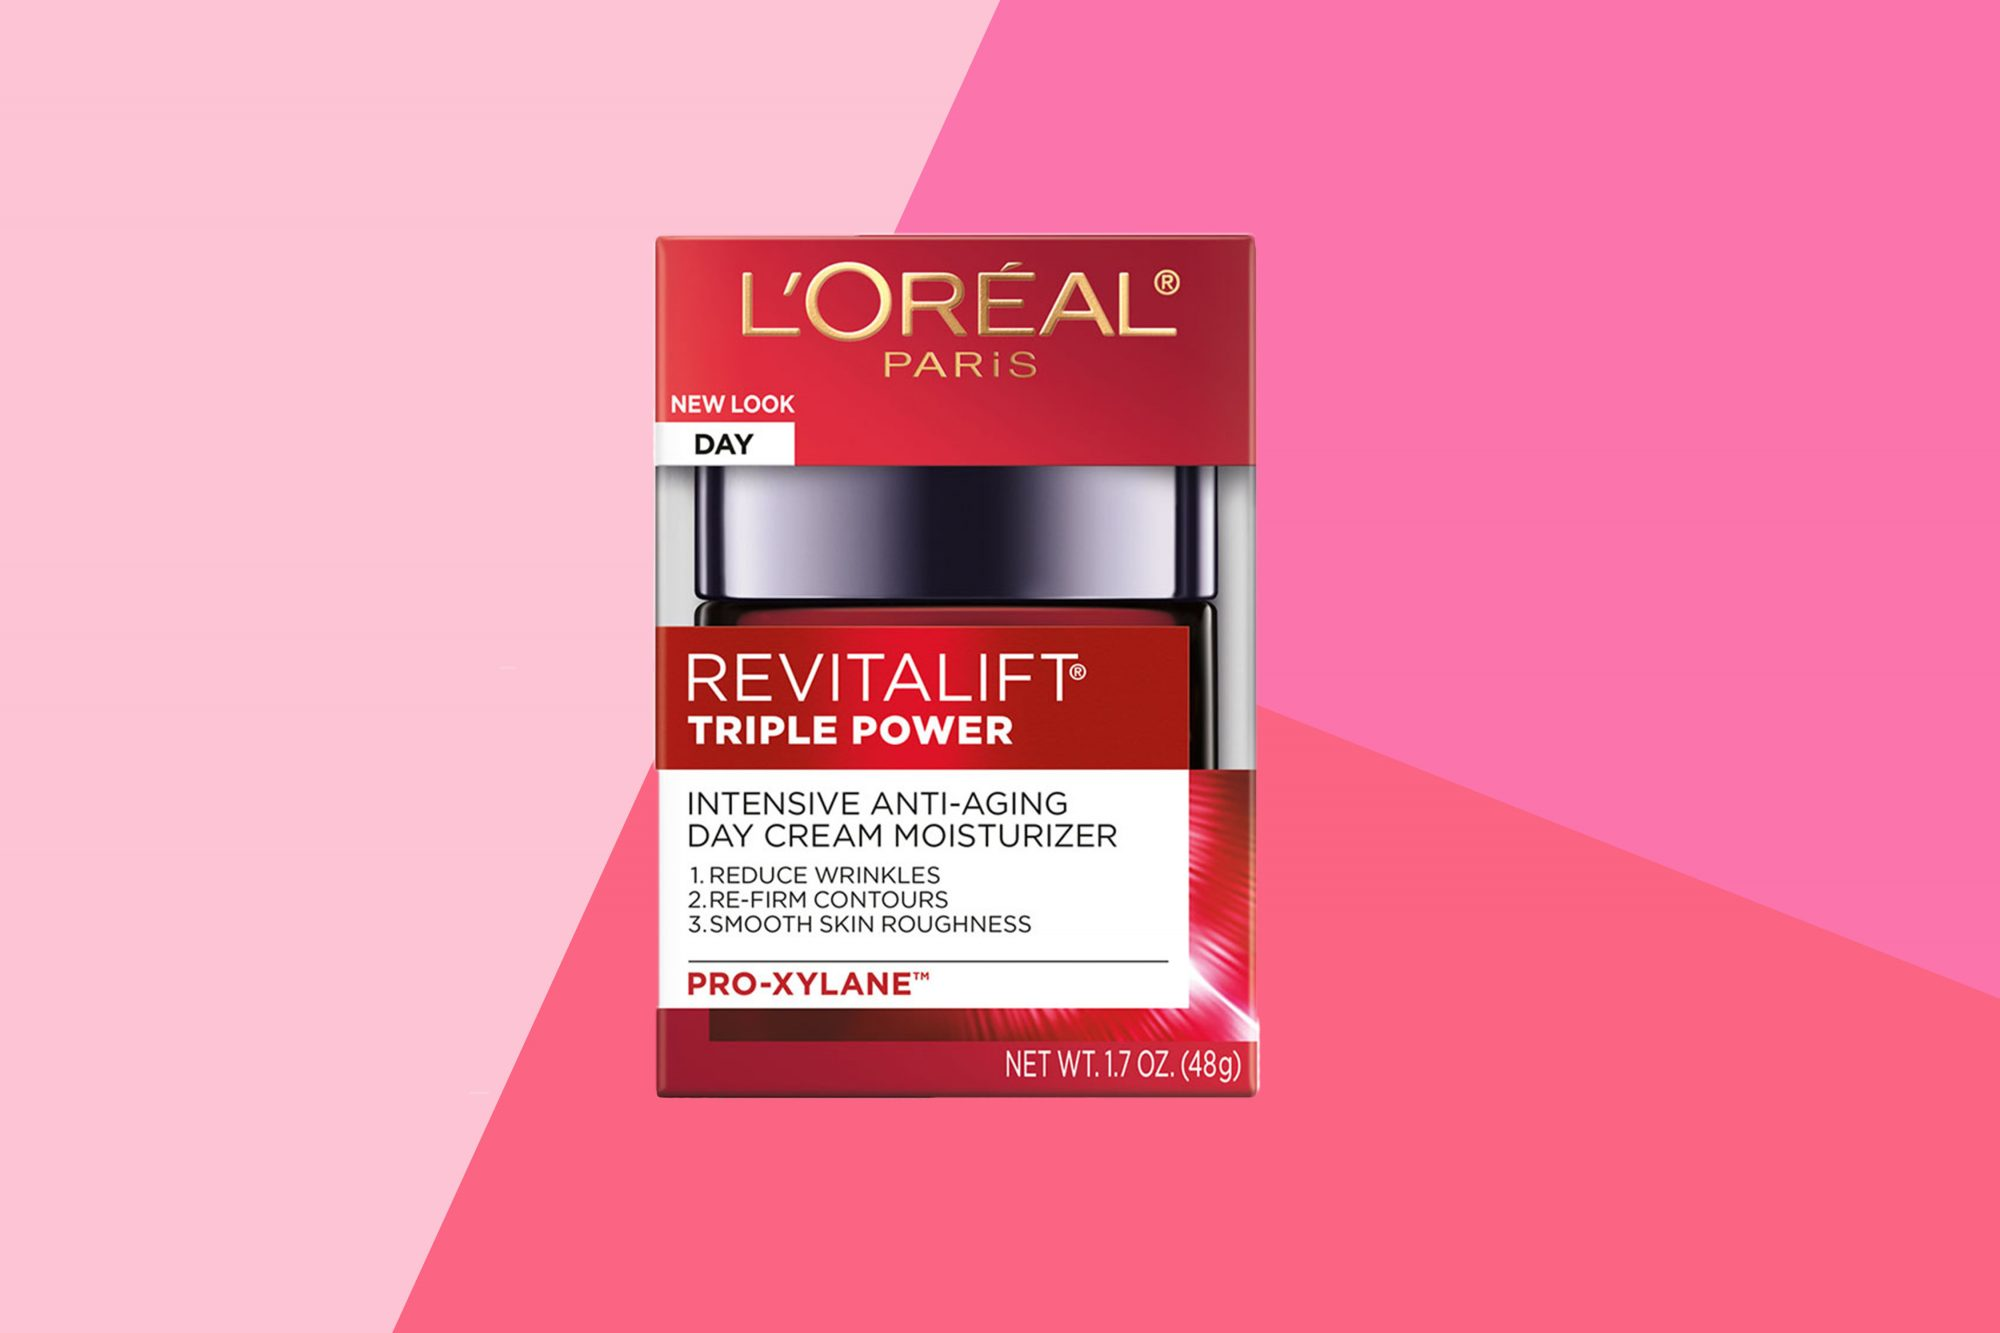 The 5 Best Anti-Aging Products You Can Buy at Walmart, According to Thousands of Reviews